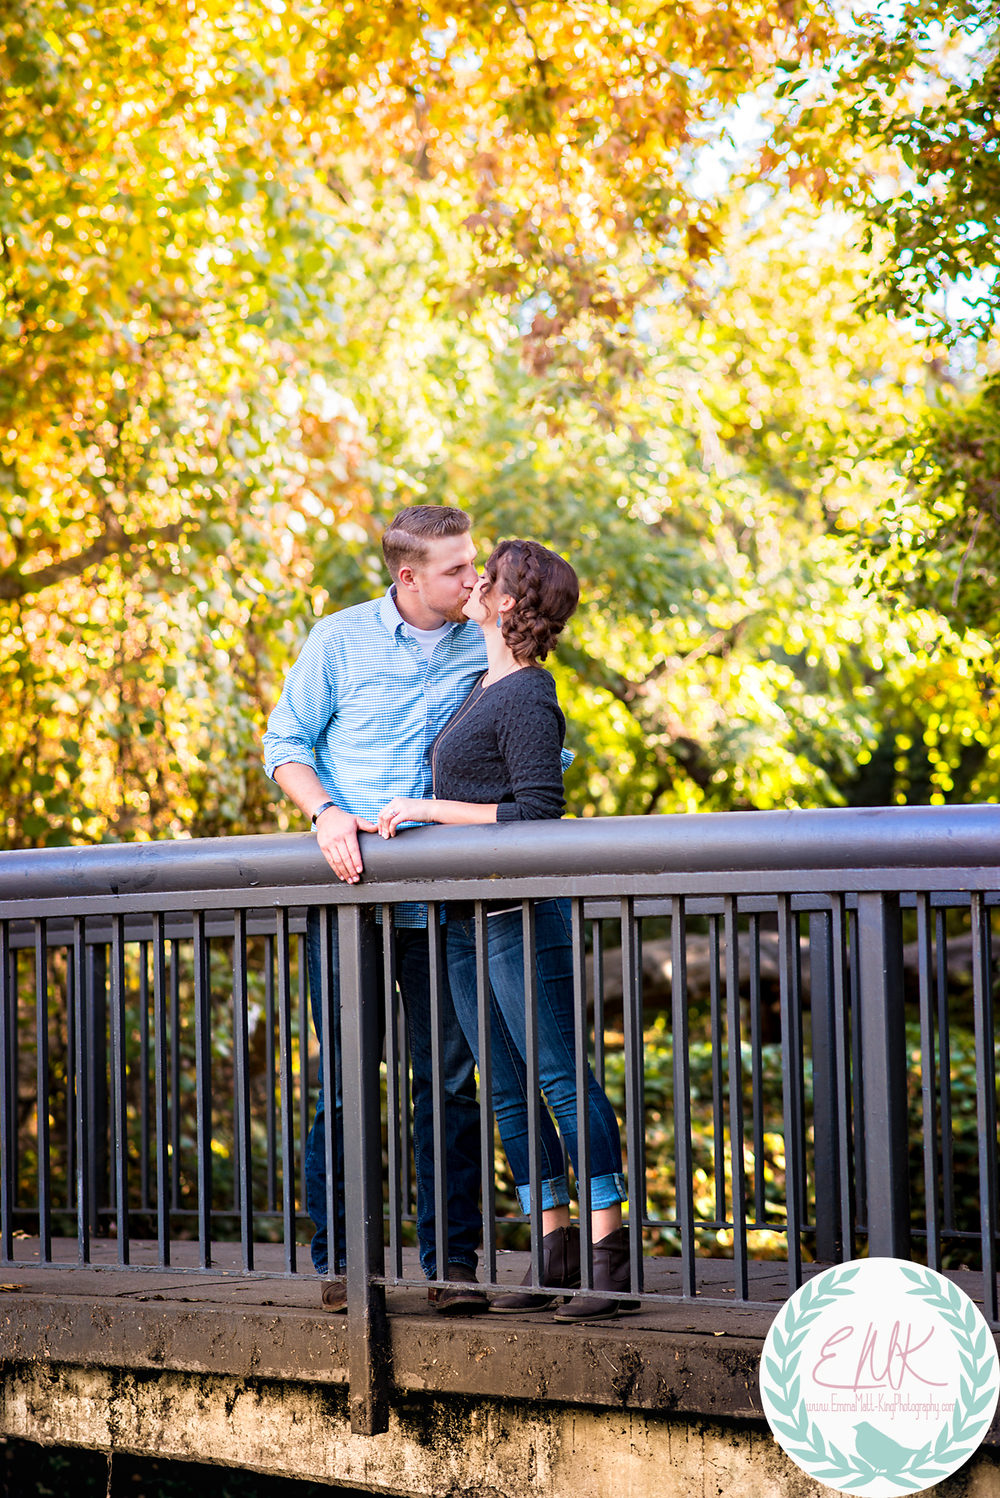 Clay and Tracey engagement-13.jpg